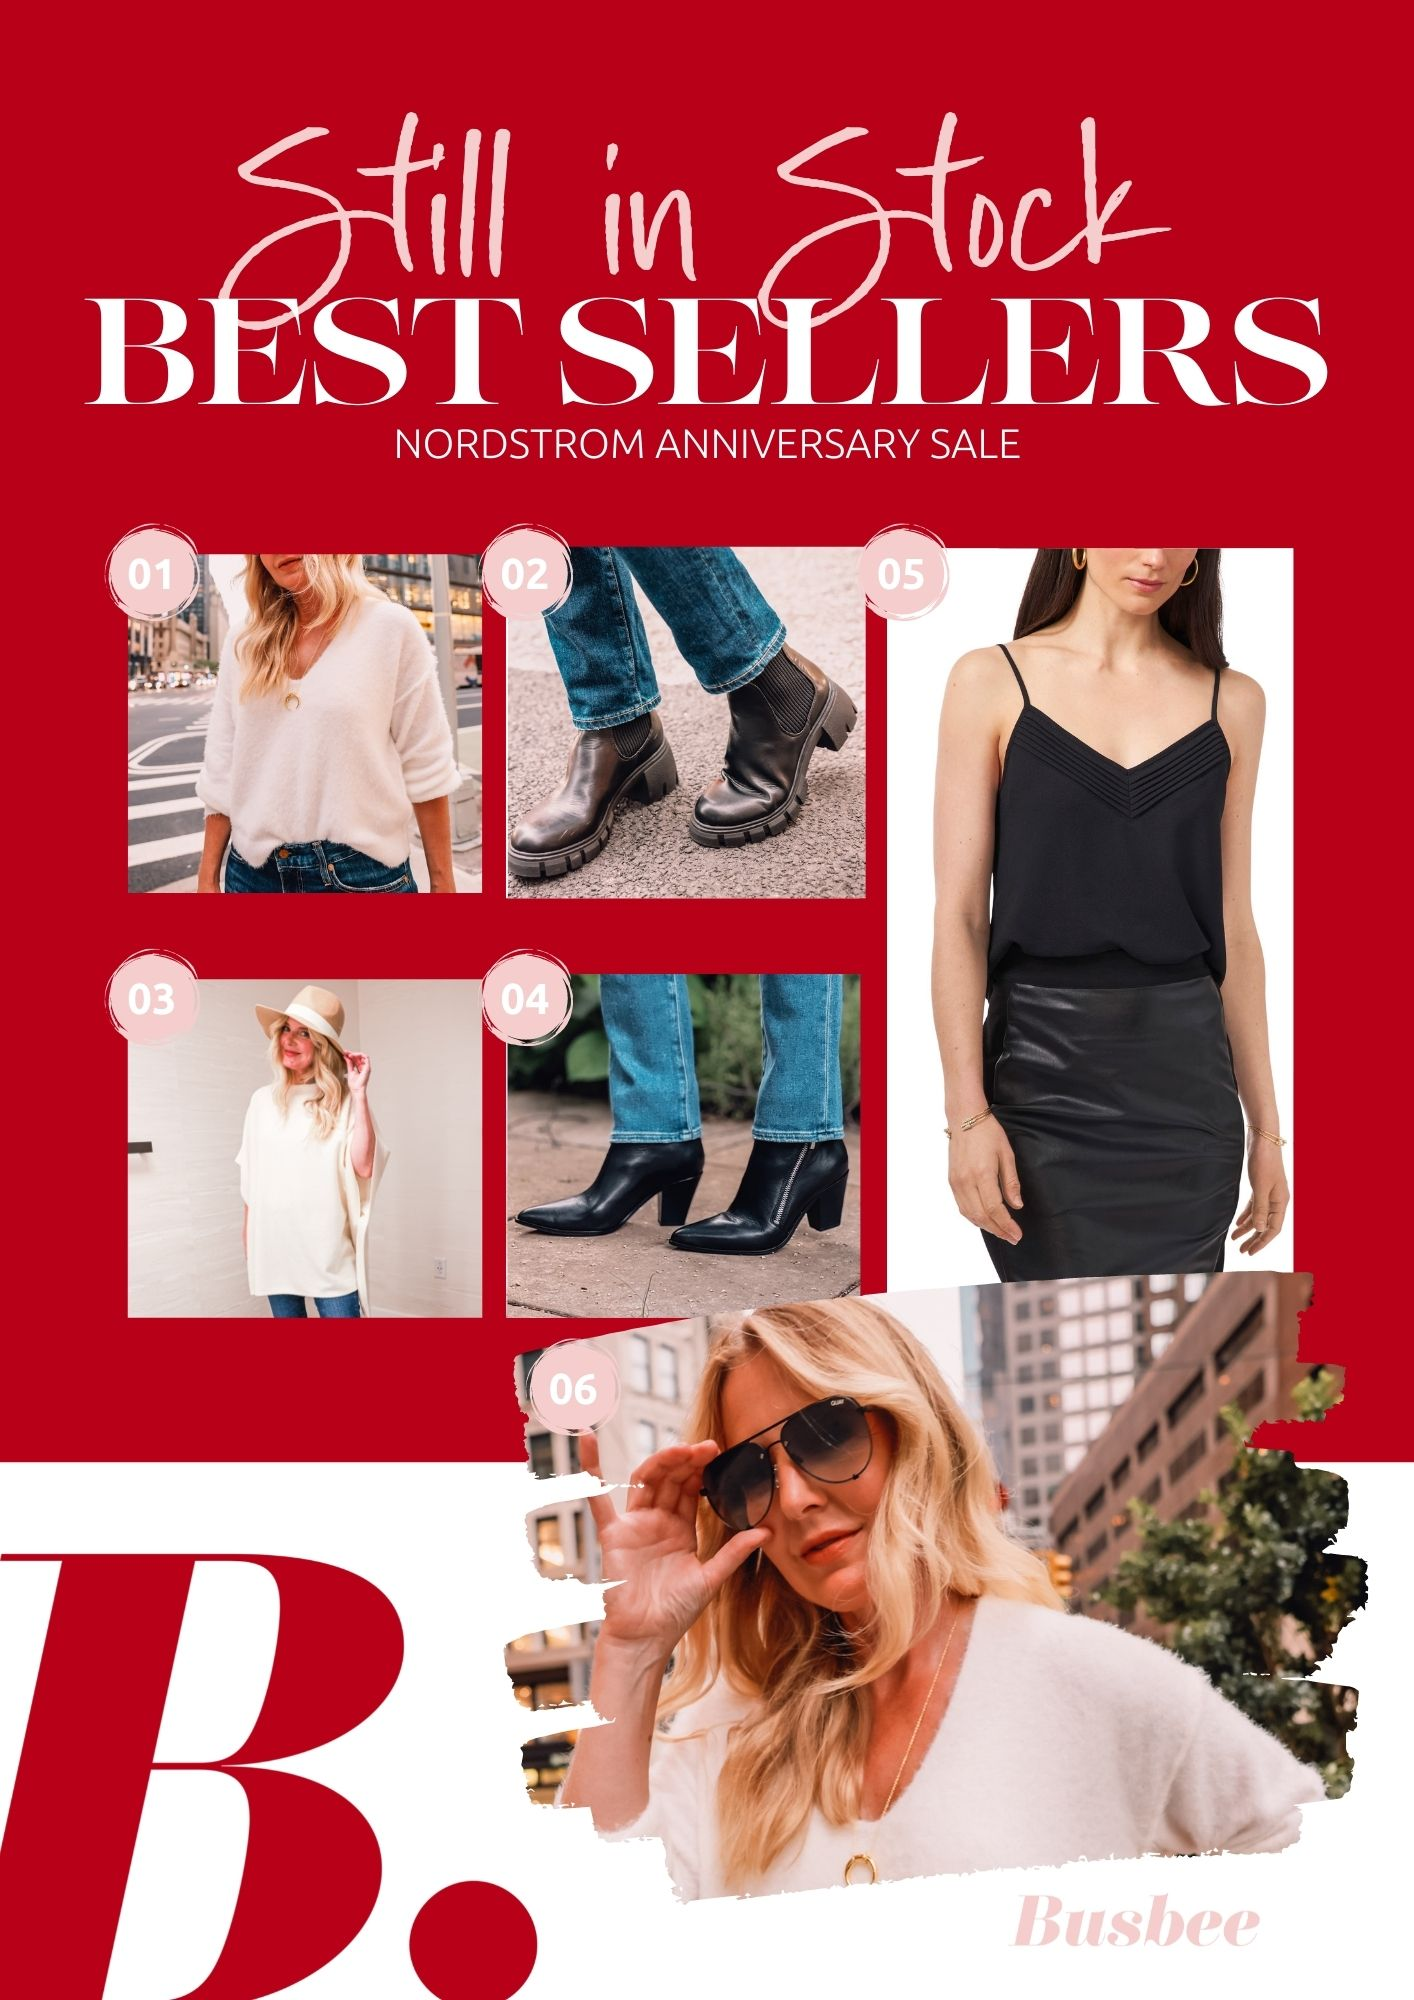 Best Sellers From The Nordstrom Anniversary Sale, nsale , nordstrom anniversary sale 2021, still in stock nordstrom sale items, still in stock nsale, nsale 2021, nordstrom sale best sellers